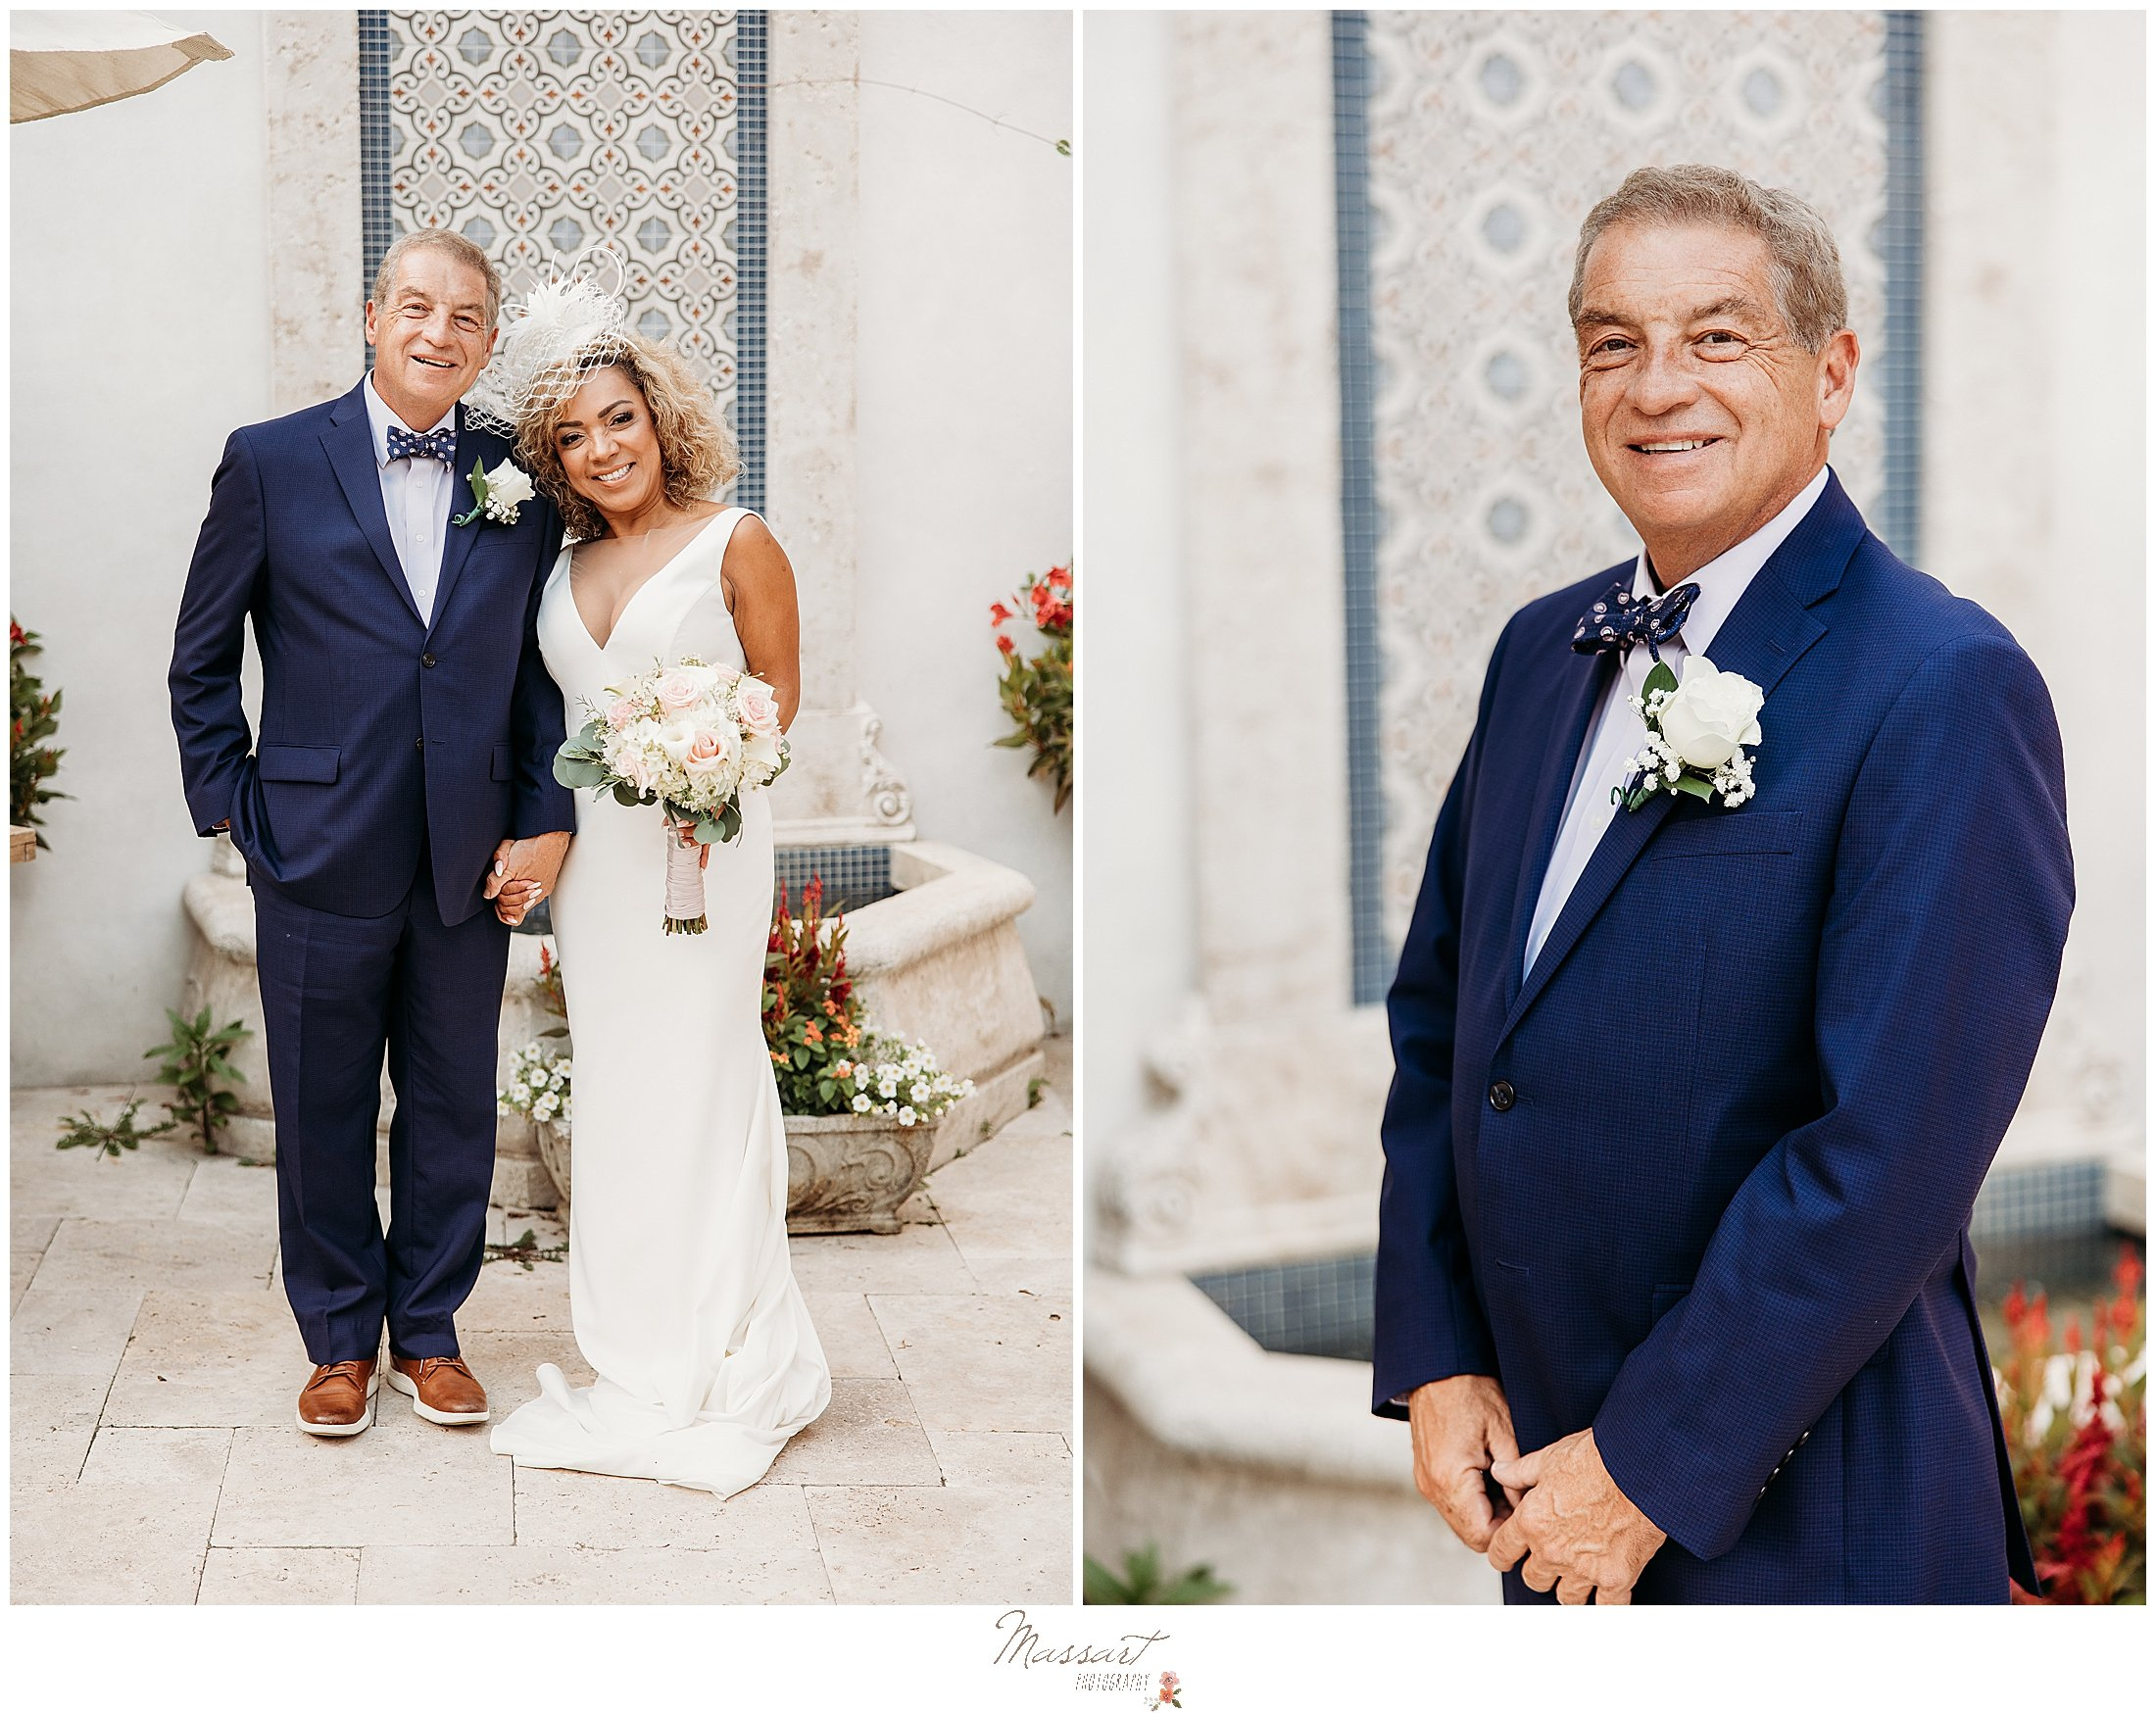 Ri photographer takes picture of bride and groom at Adelphi hotel